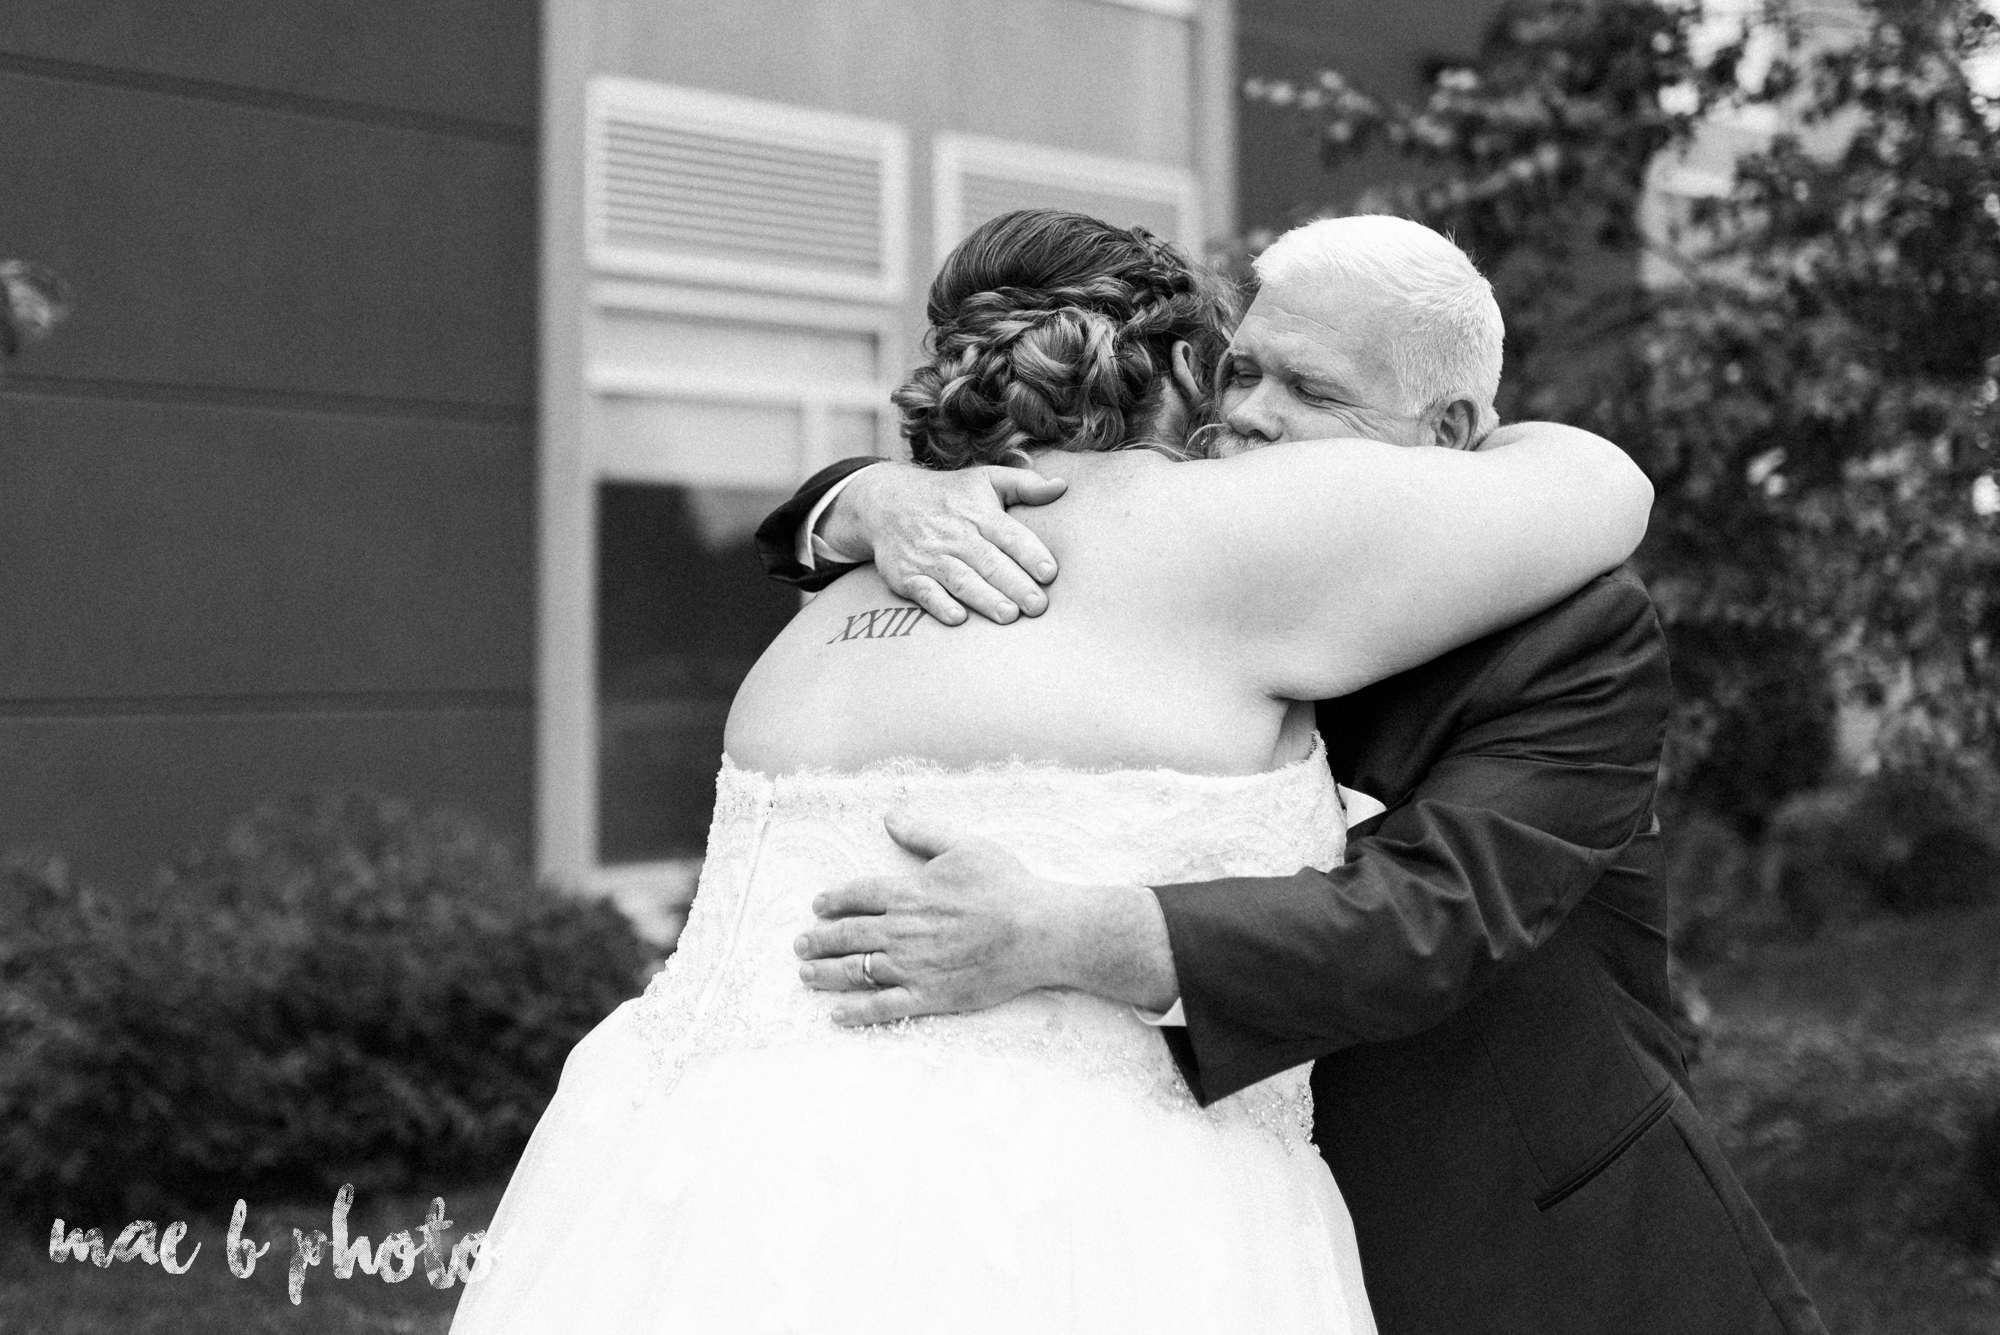 Kristina and ryan's personal vintage glam fall wedding at disalvo's station restaurant and the arnold palmer latrobe country club in latrobe, pa photographed by youngstown wedding photographer mae b photo-23.jpg